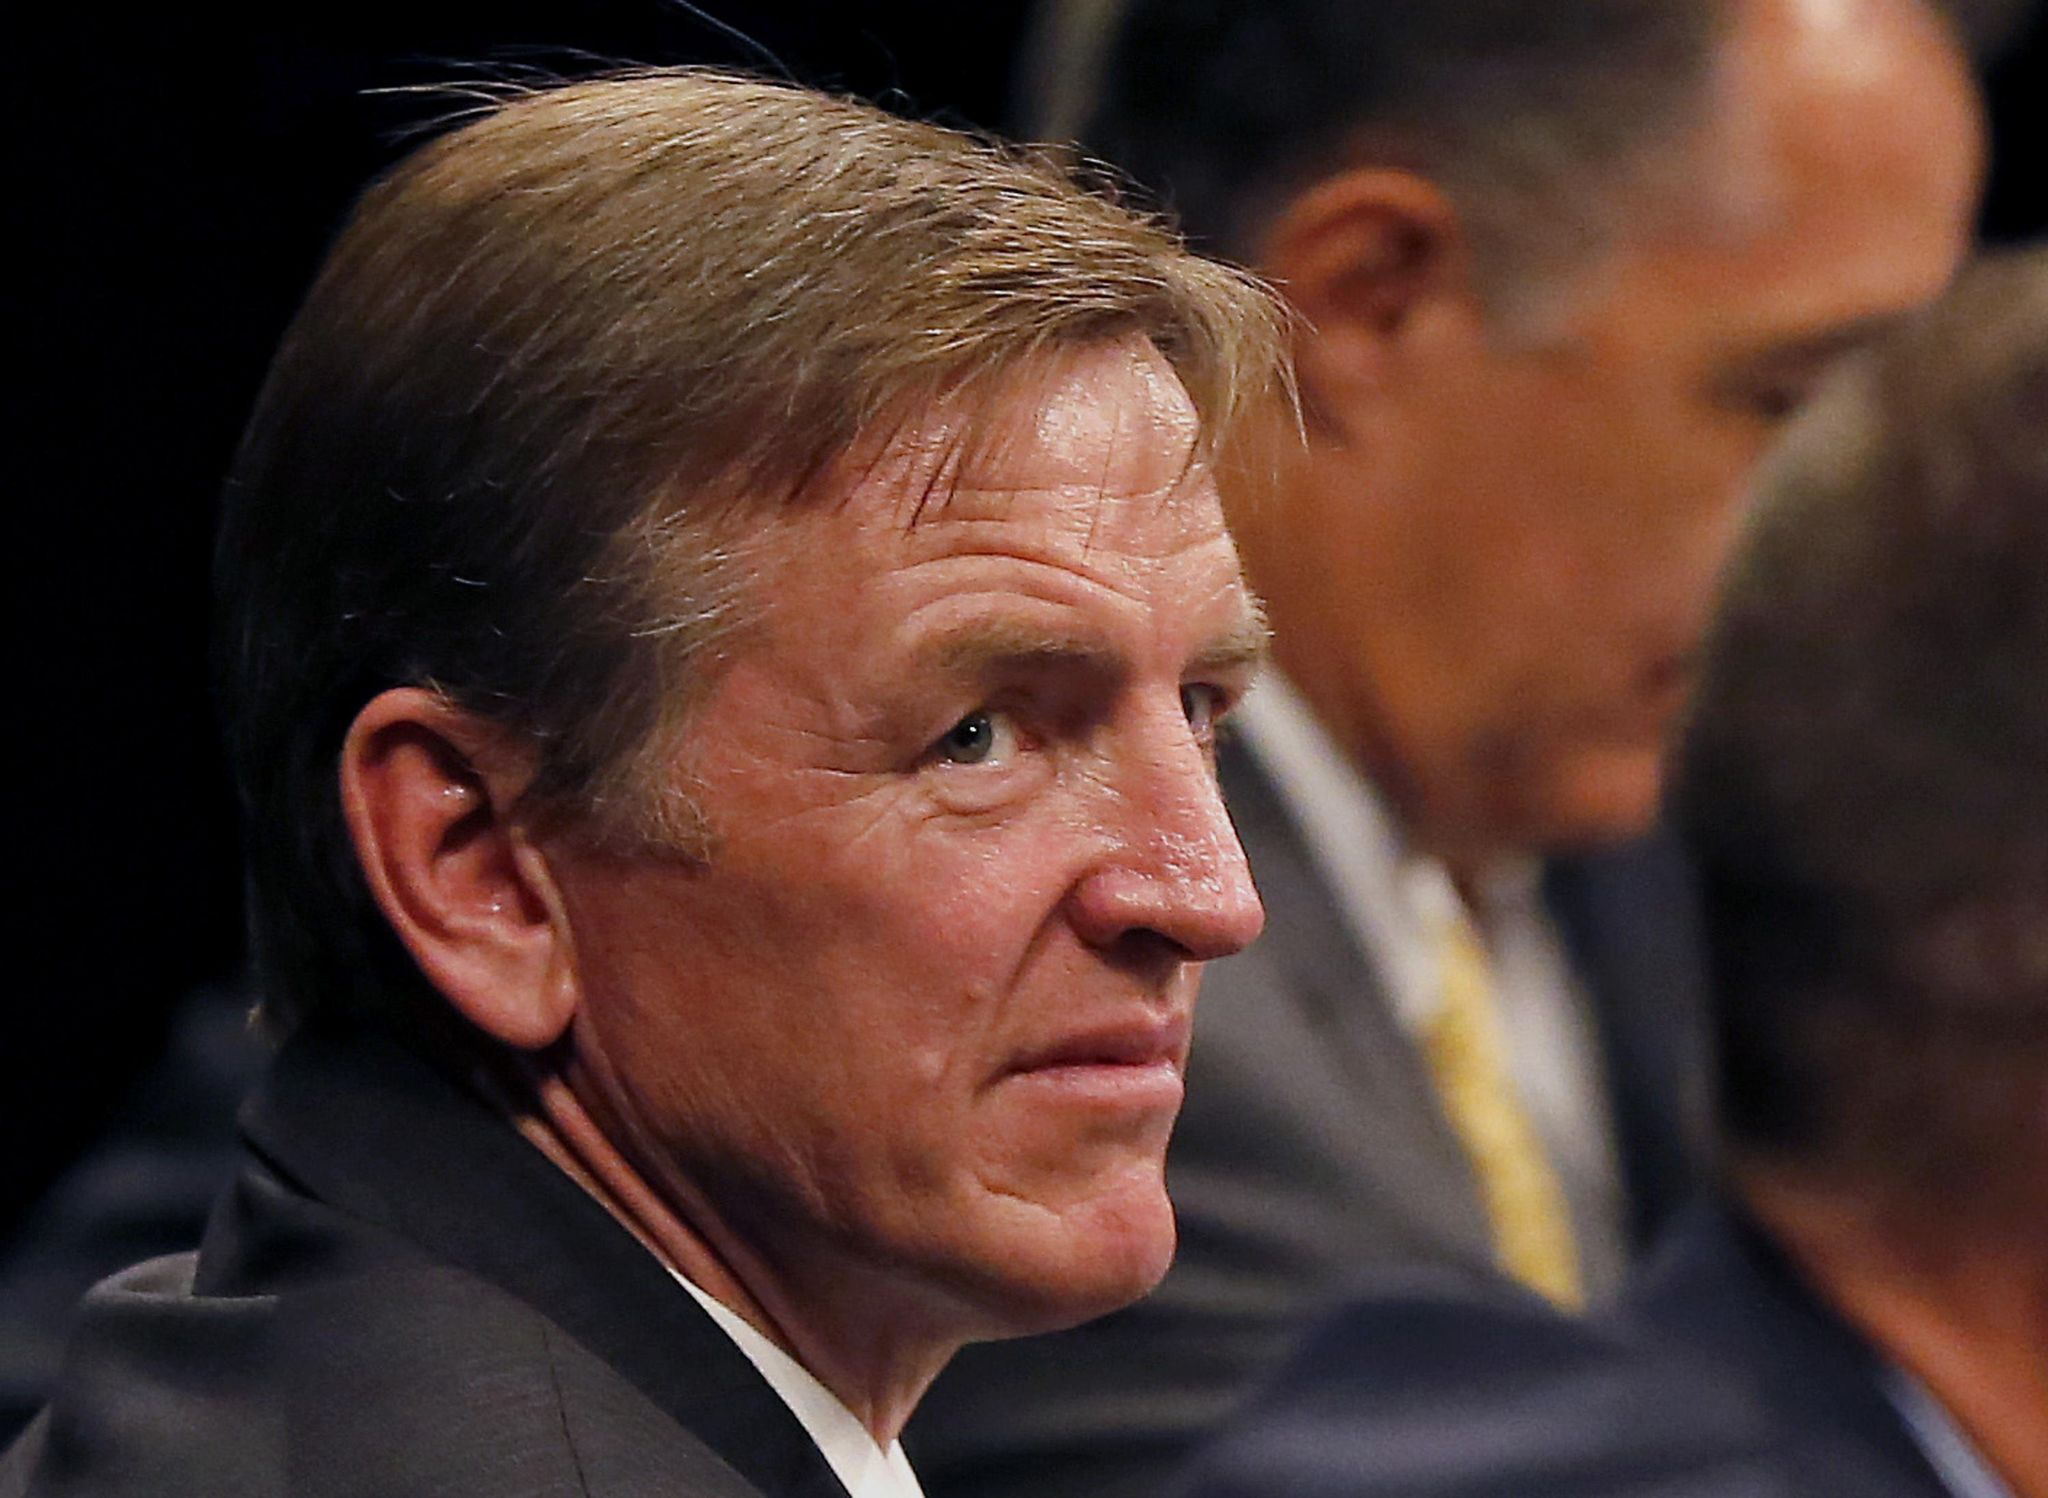 Paul Gosar rips siblings who endorsed opponent David Brill in TV ad - Washington Times